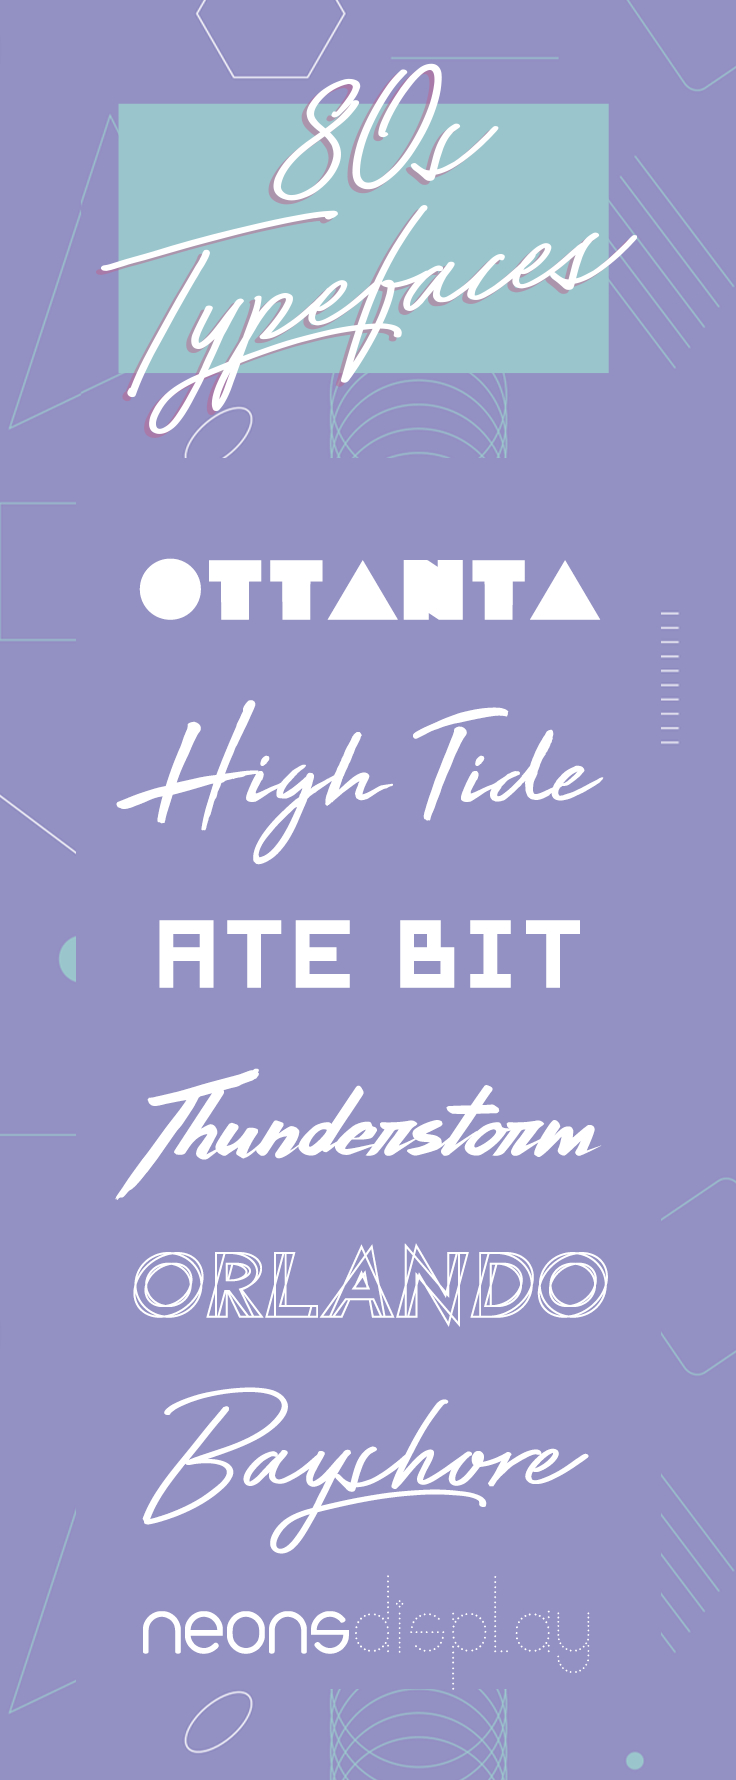 20 Perfect 1980's Typefaces to Evoke Nostalgia ~ Creative Market Blog